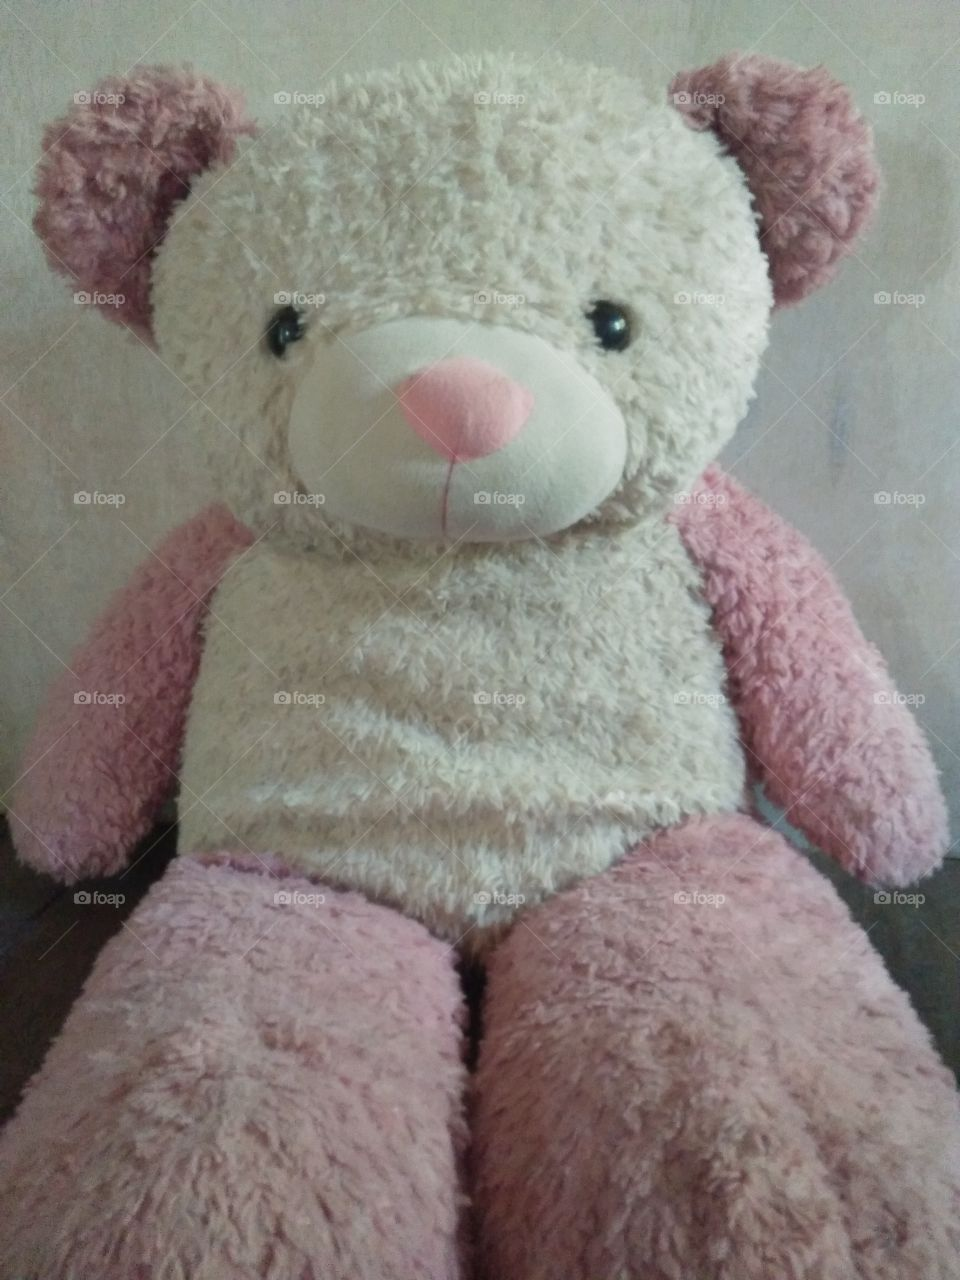 This is pink the old teddy of my second daughter Apple .She is a little bit sad and a little filthy.